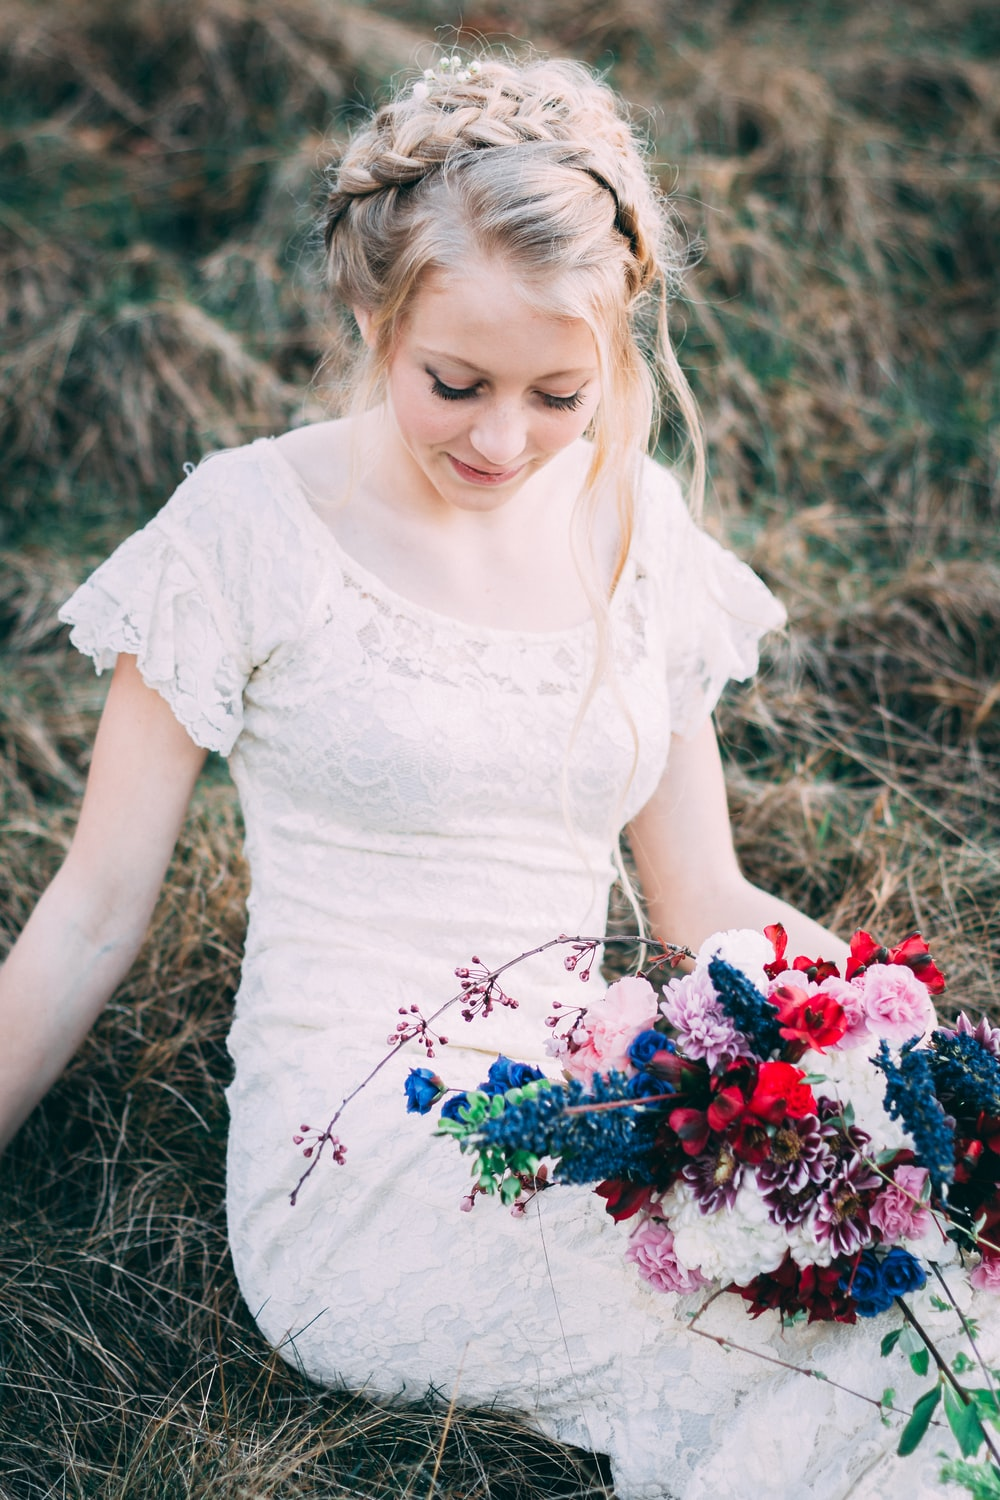 woman wearing white lace dress with flower bouquet sitting on grass at daytime